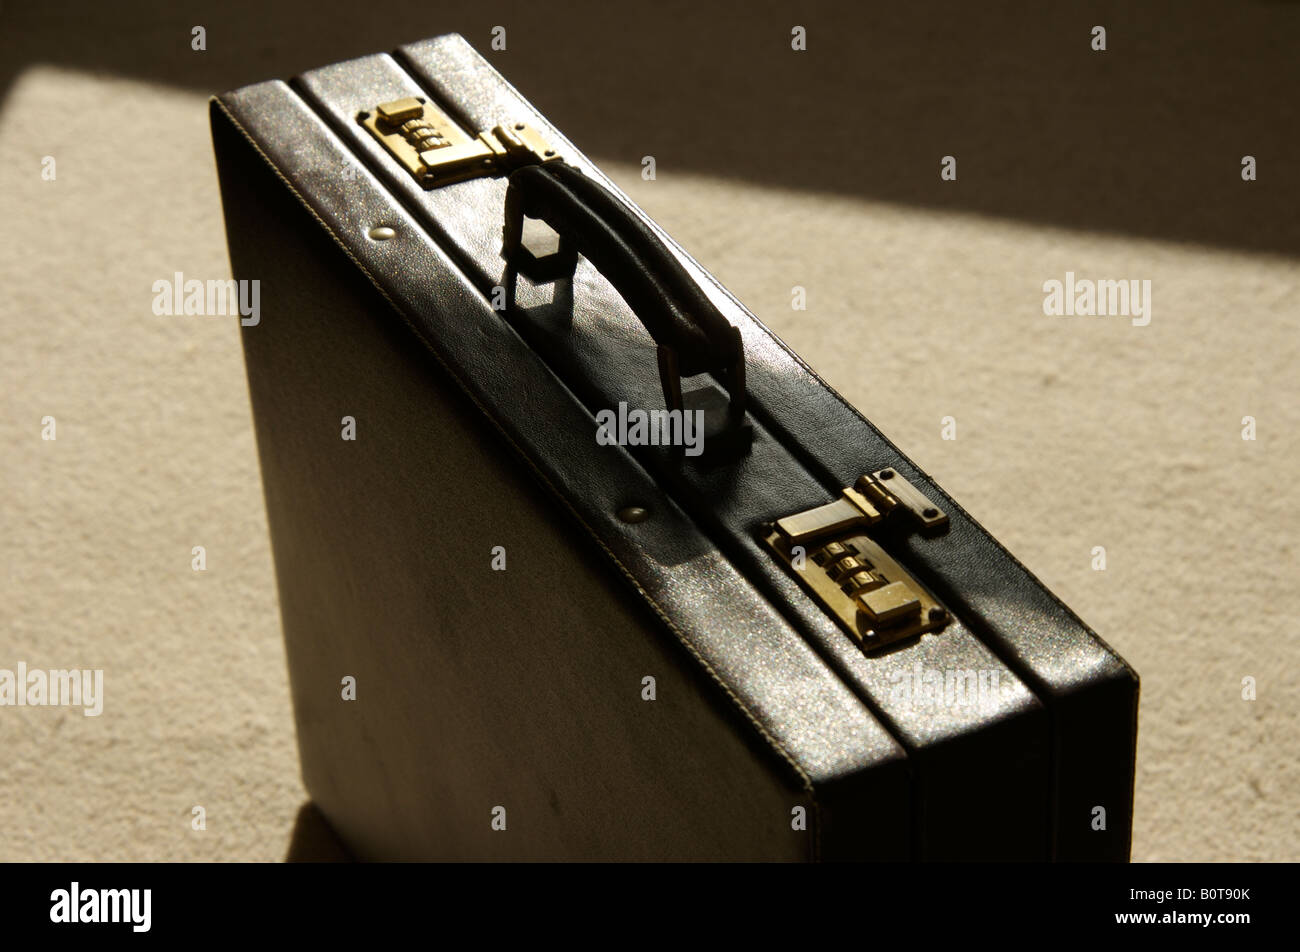 Briefcase - Stock Image